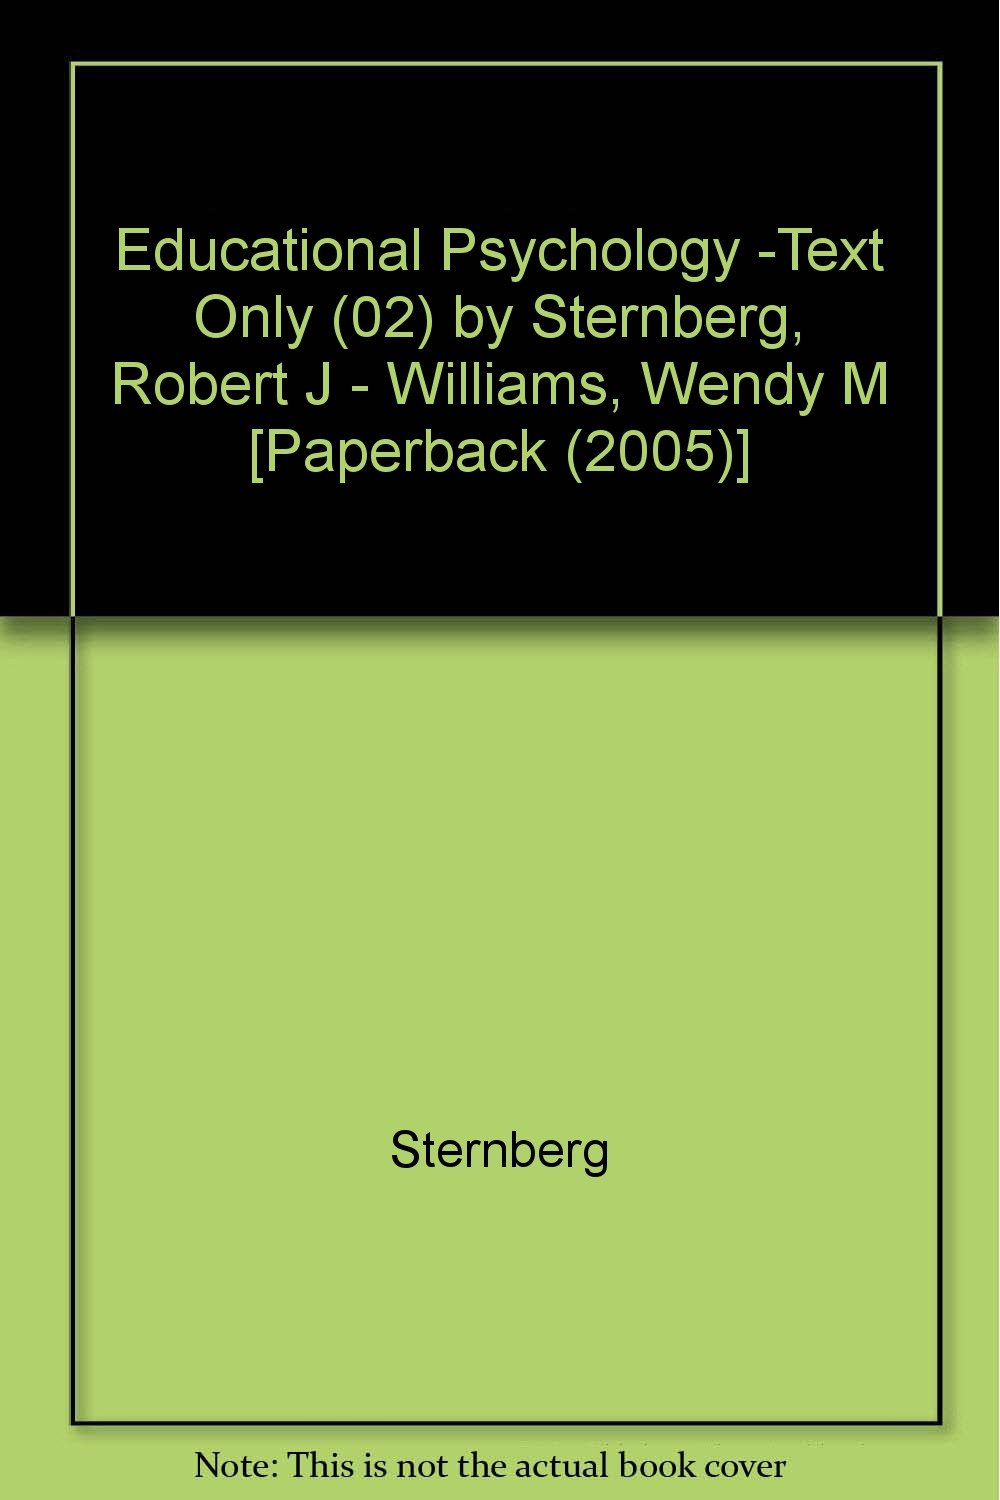 Educational Psychology -Text Only (02) by Sternberg, Robert J - Williams, Wendy M [Paperback (2005)] ebook